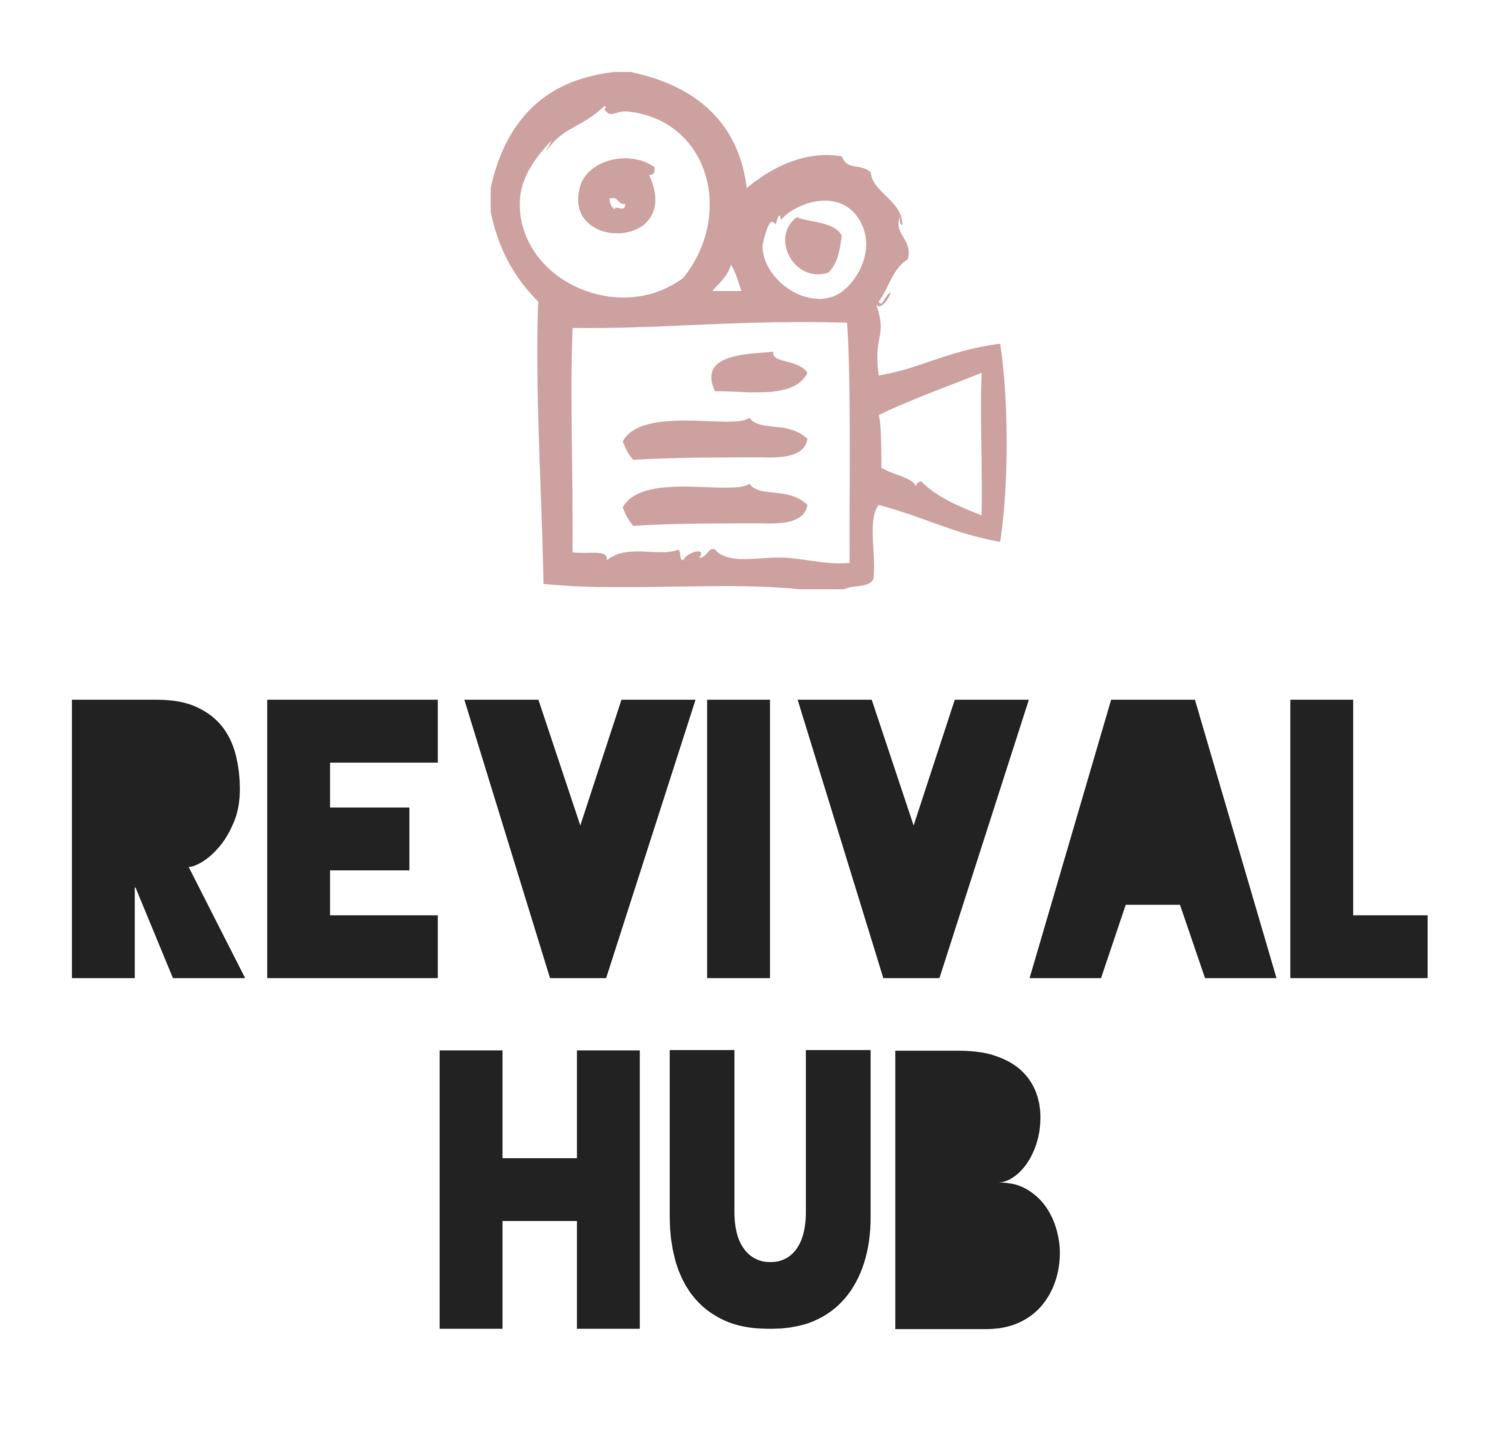 Revival Hub Los Angeles — Hulu's Into The Dark (Ep